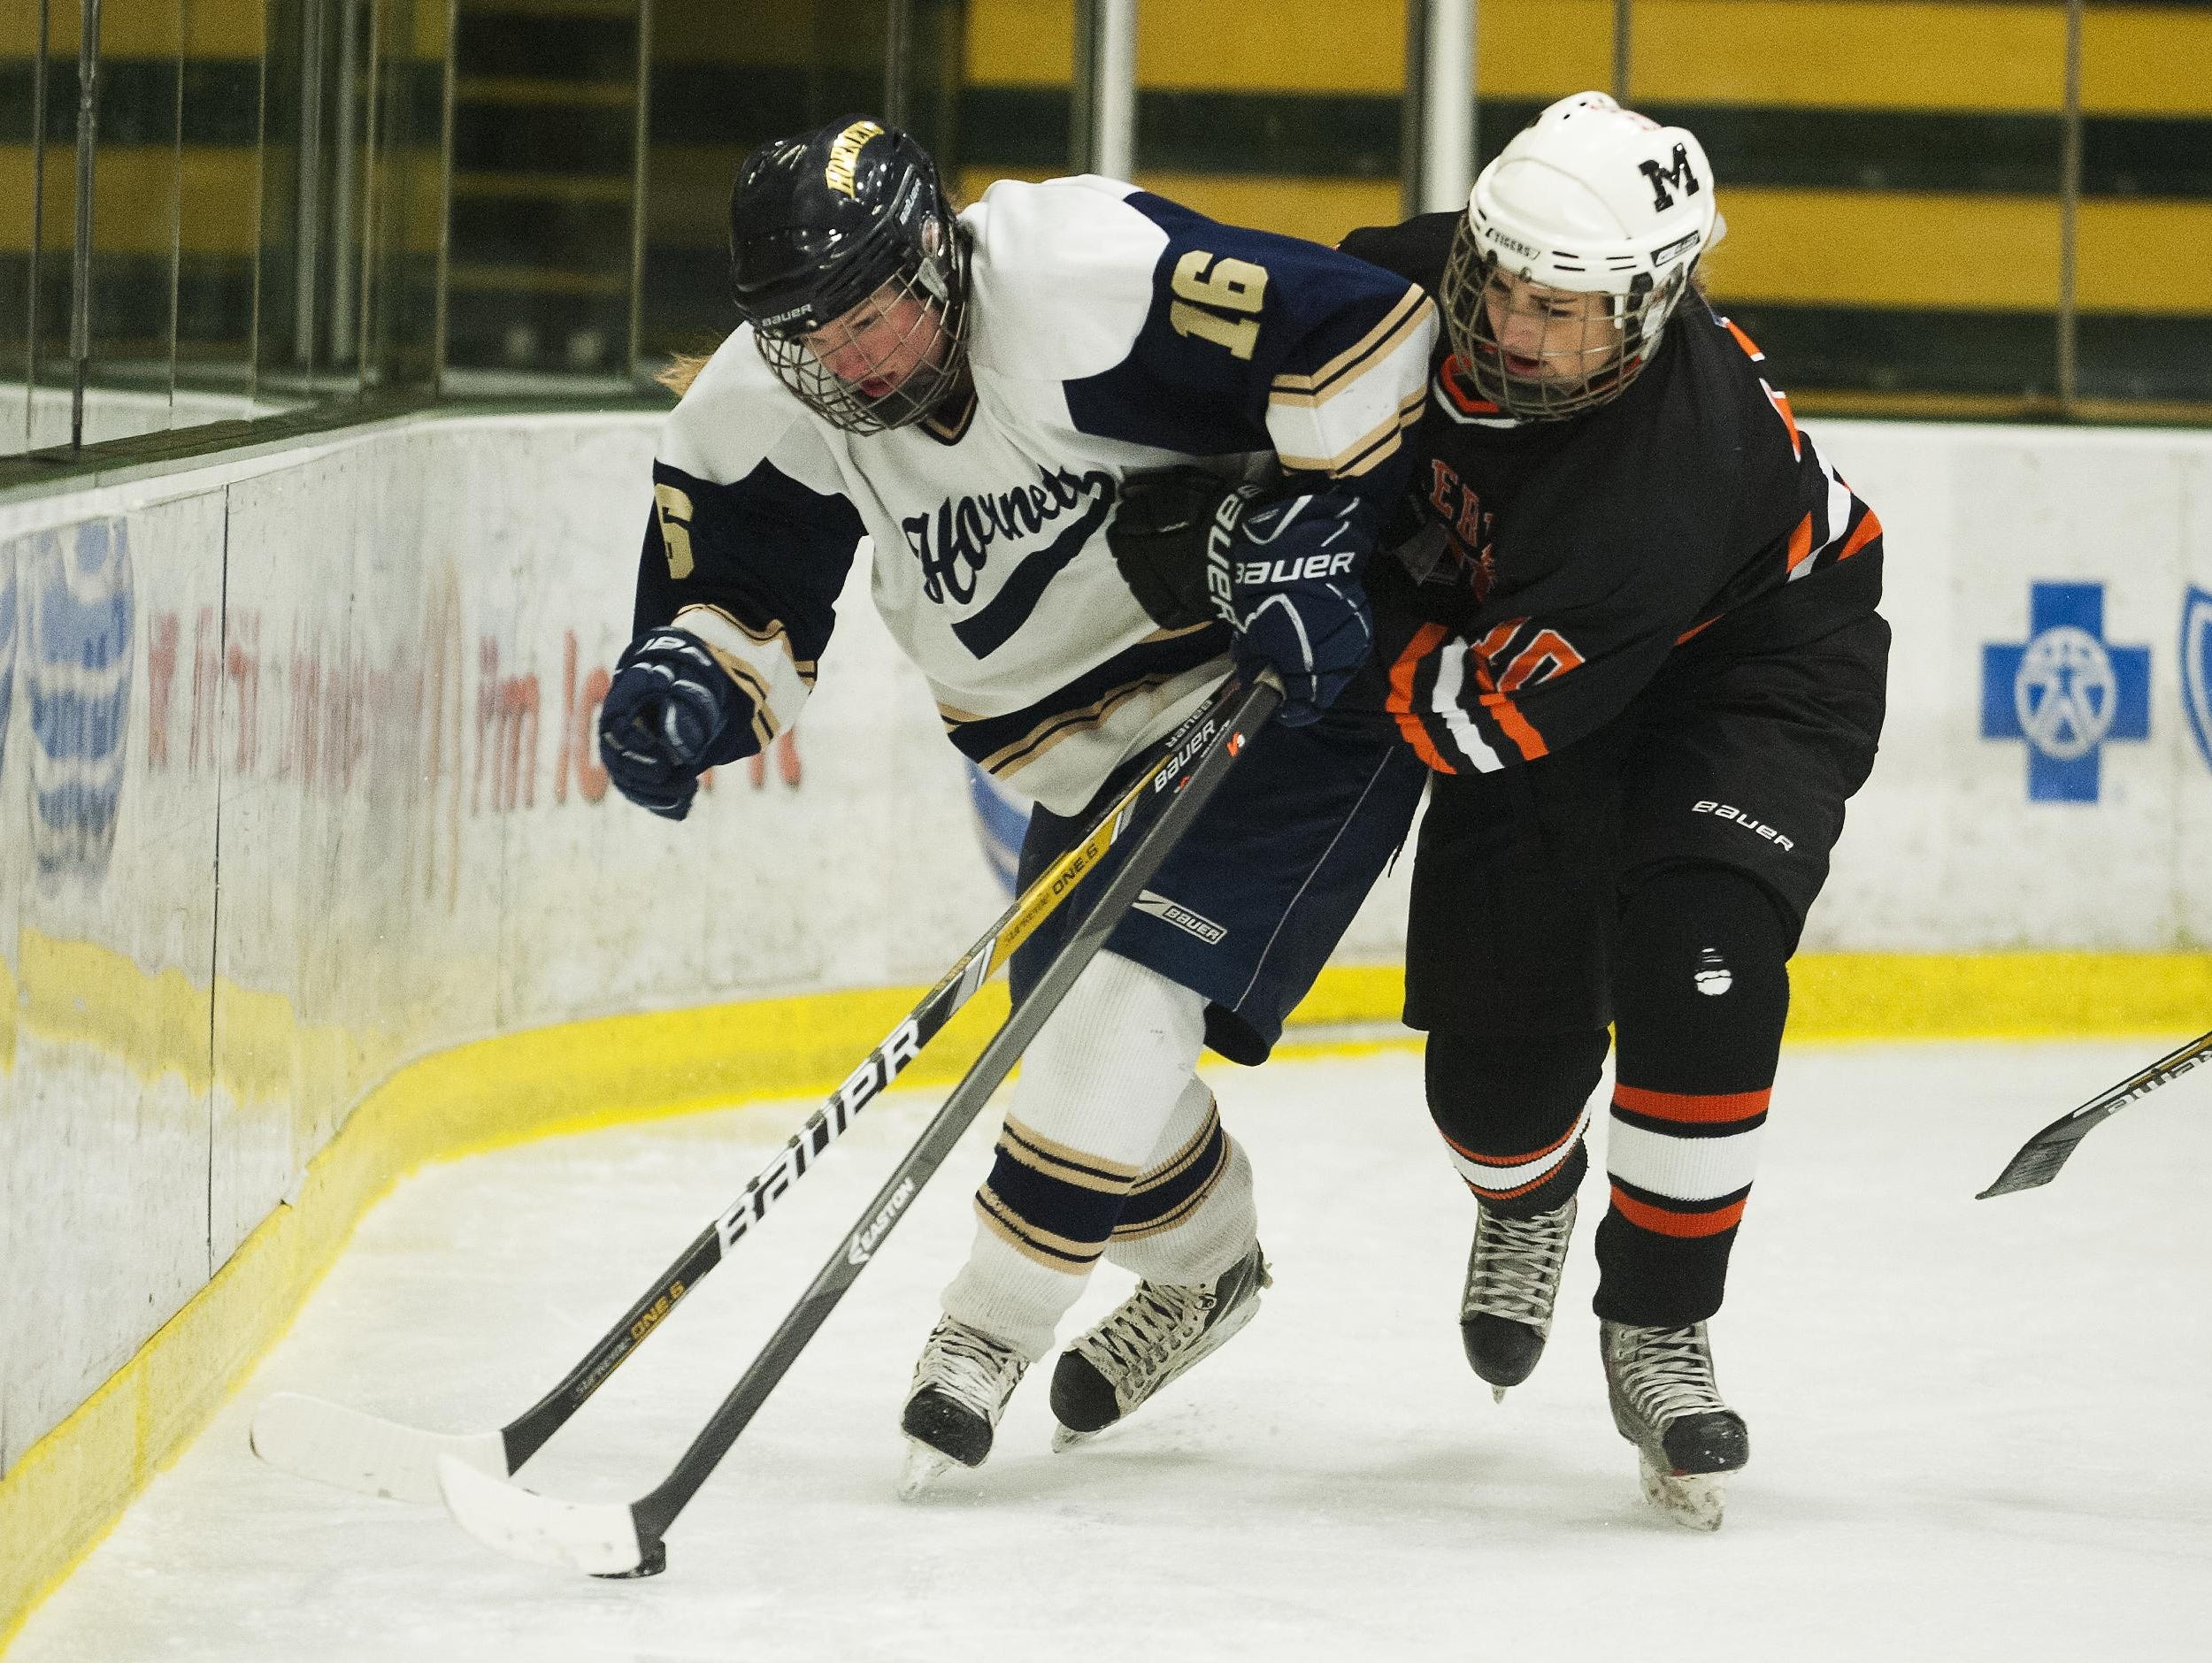 Middlebury's Allison White (10) battles for the puck with Essex's Avery MacGillivray (16) during the Division I high school girls hockey championship last season.